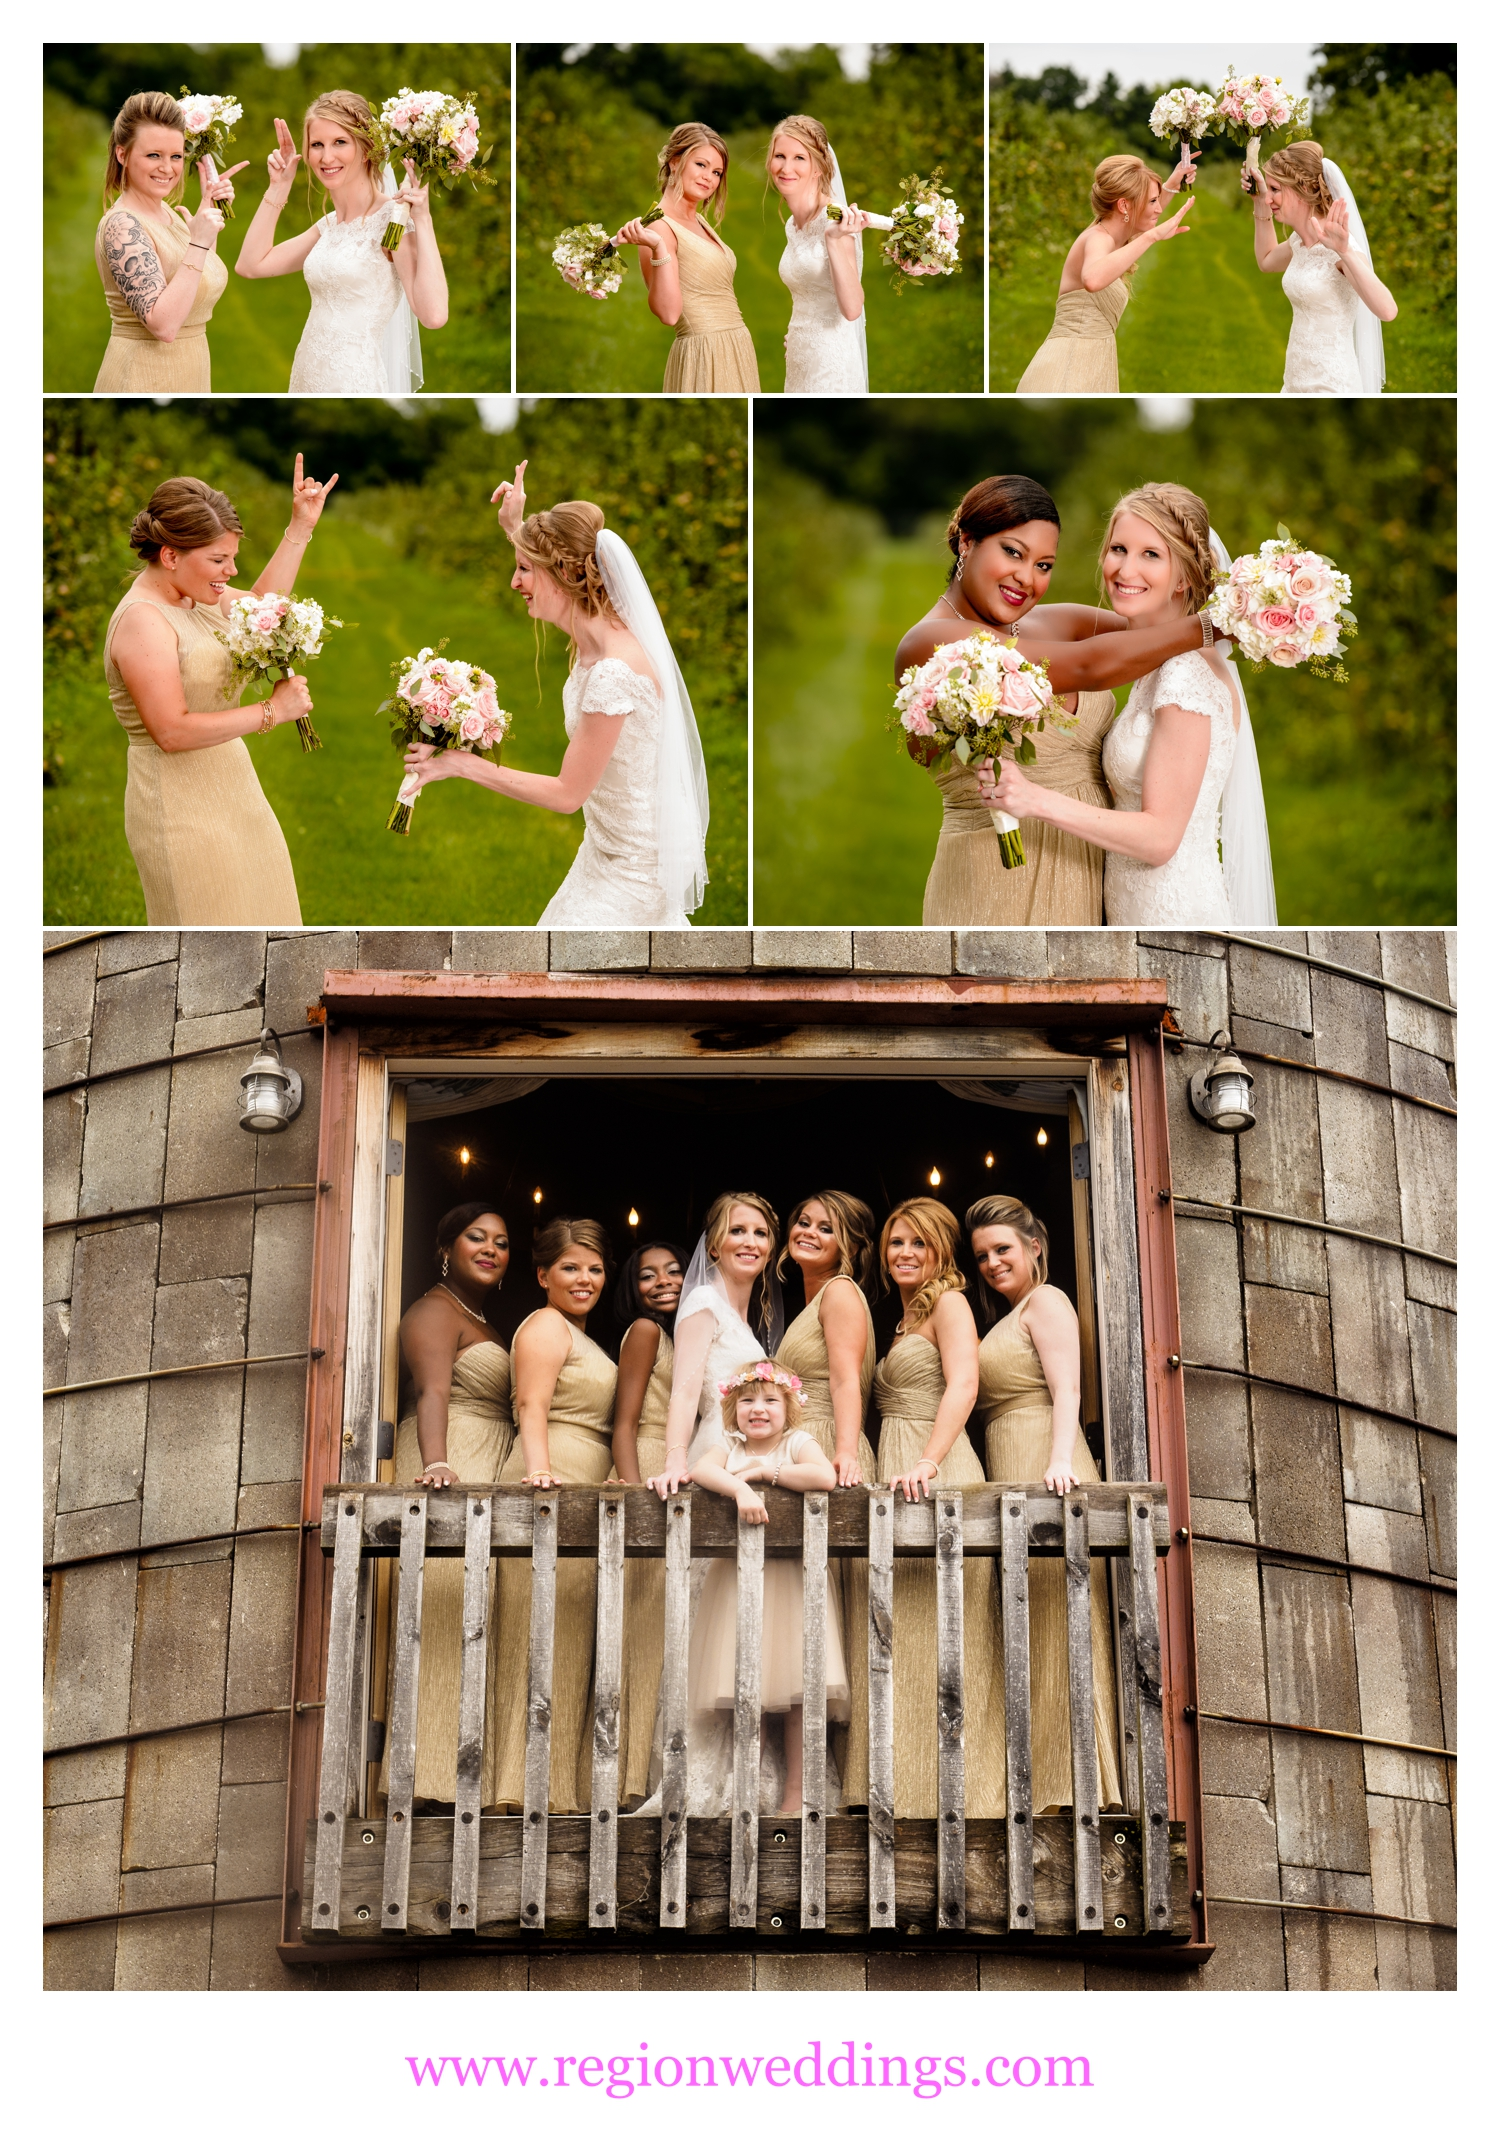 Fun bridesmaid photos at County Line Orchard.